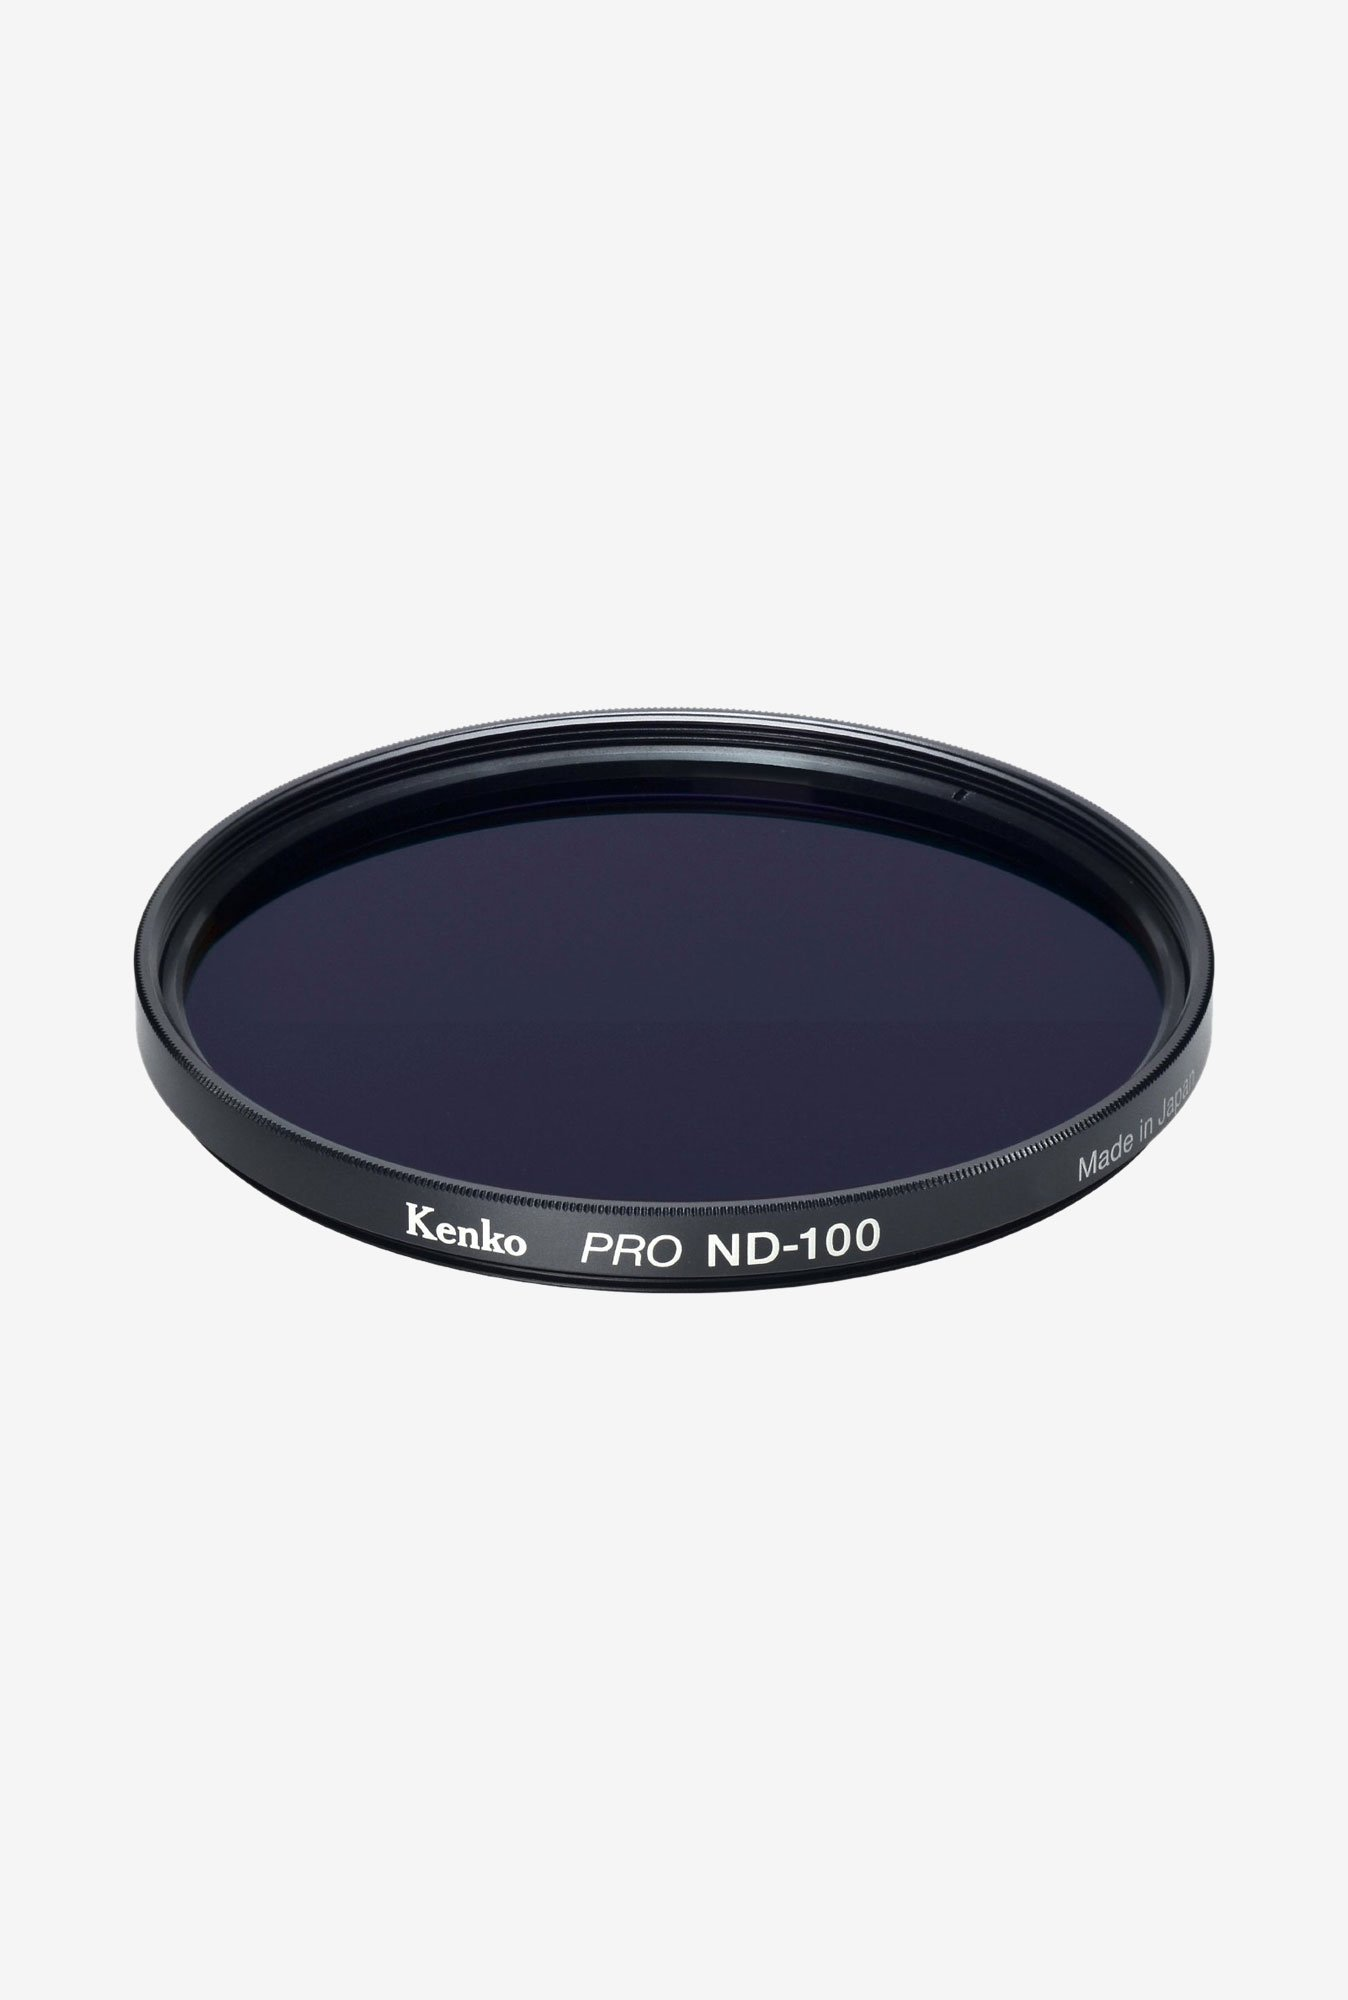 Kenko 49mm Pro ND100 Multicoated Camera Lens Filter (Black)